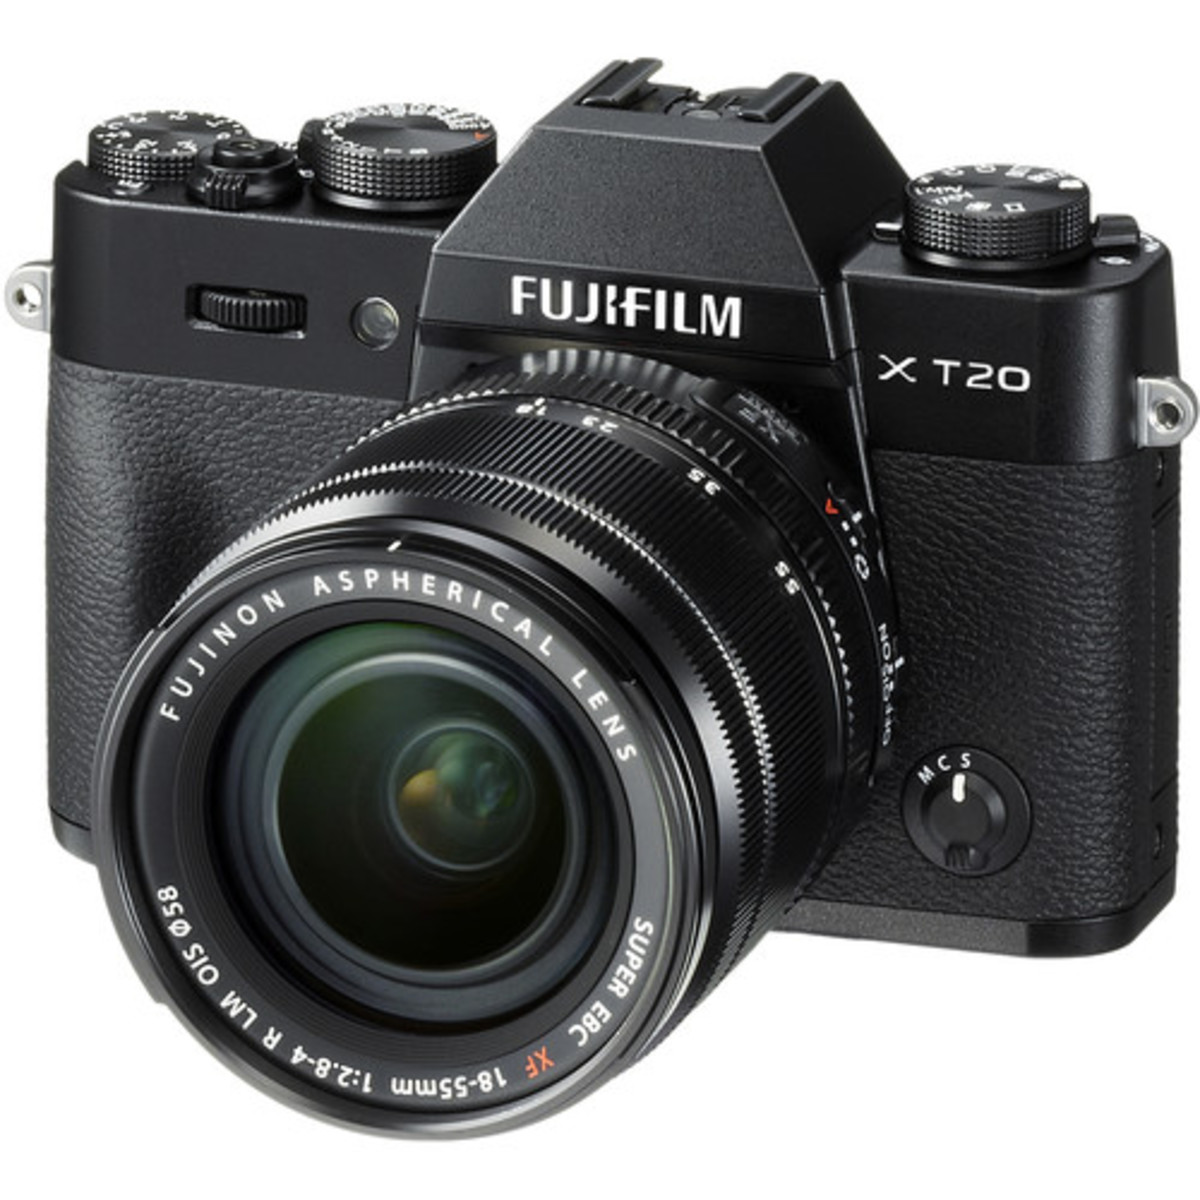 Fujifilm X-T20 Mirrorless Digital Camera with 18-55mm Lens - [Black] (Parallel imported)